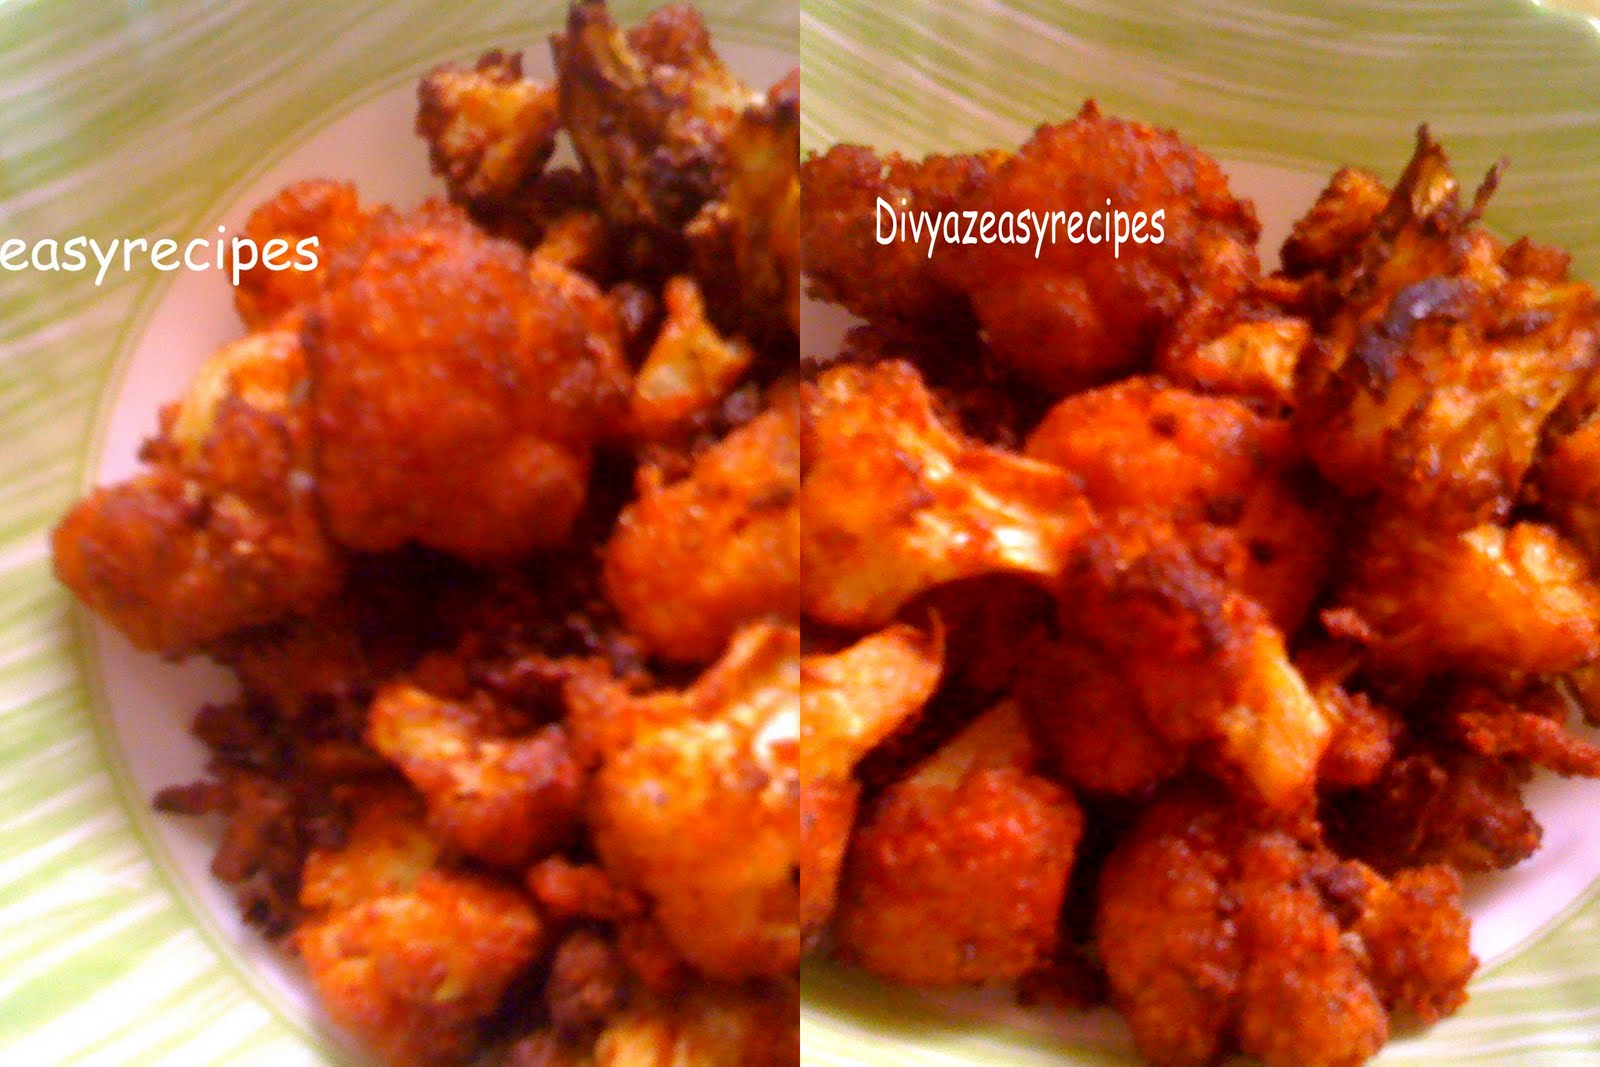 Divyazeasyrecipes: Crispy Cauliflower fry